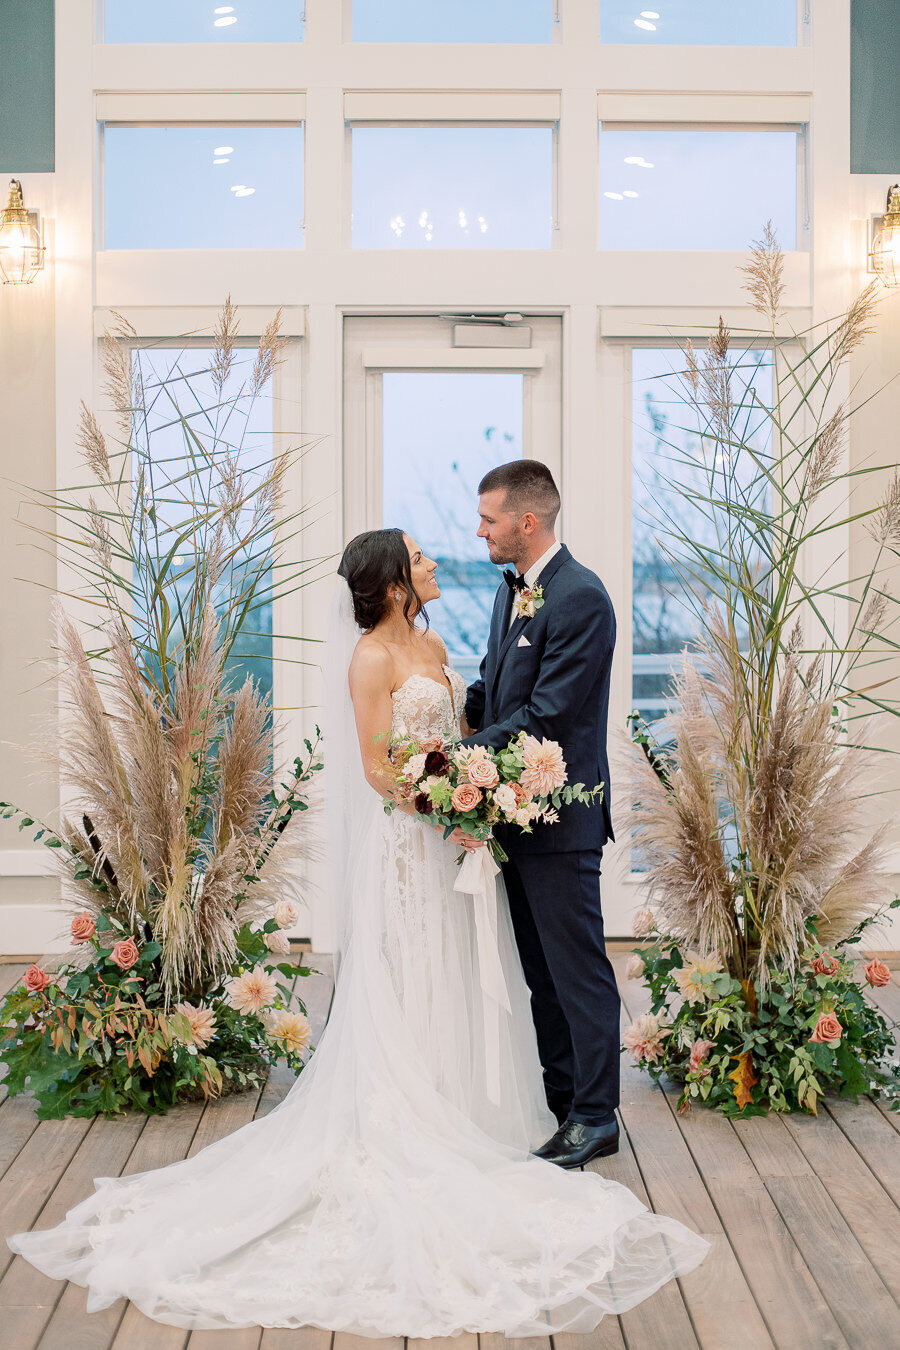 Chesapeake_Bay_Beach_Club_Stevensville_Maryland_Wedding_Megan_Harris_Photography_Blog-73